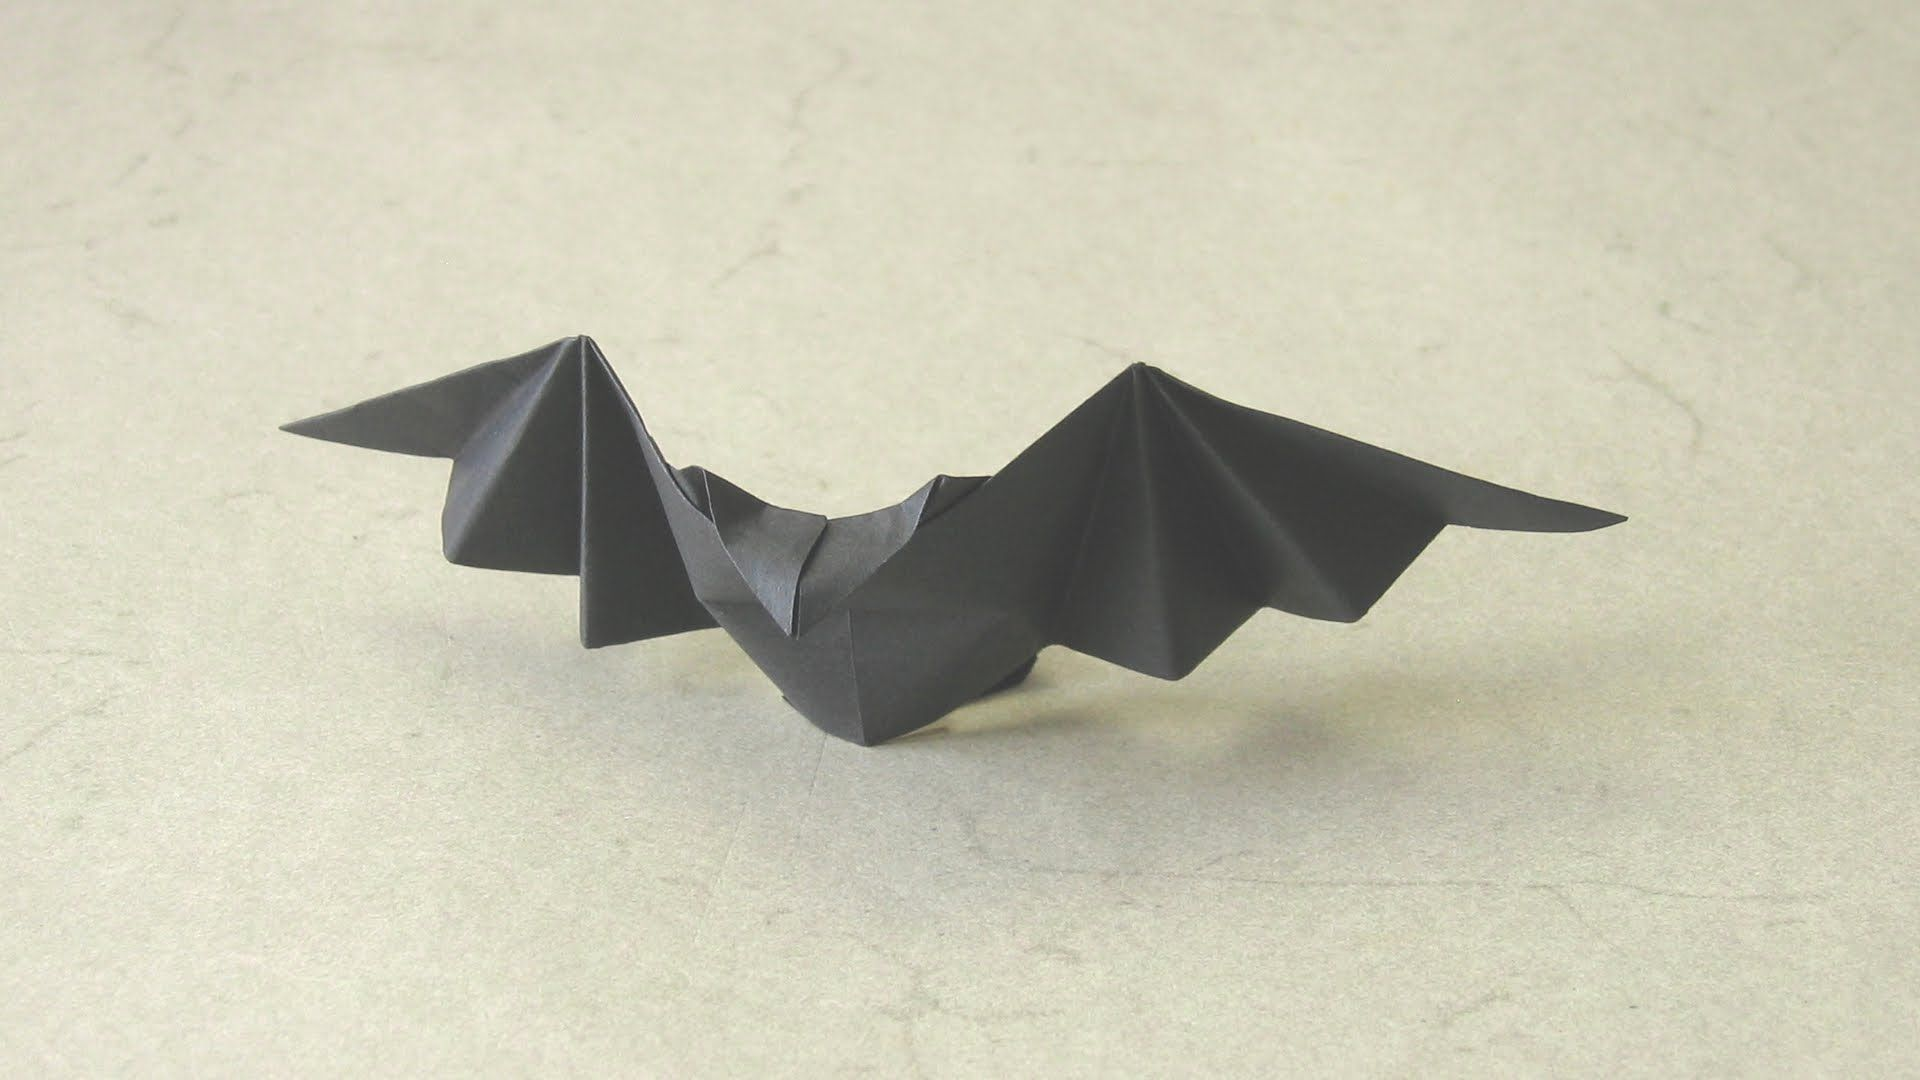 Simple Bat Diagram Minn Kota Riptide 80 Wiring Halloween Origami Instructions Patty Talo Kawasaki